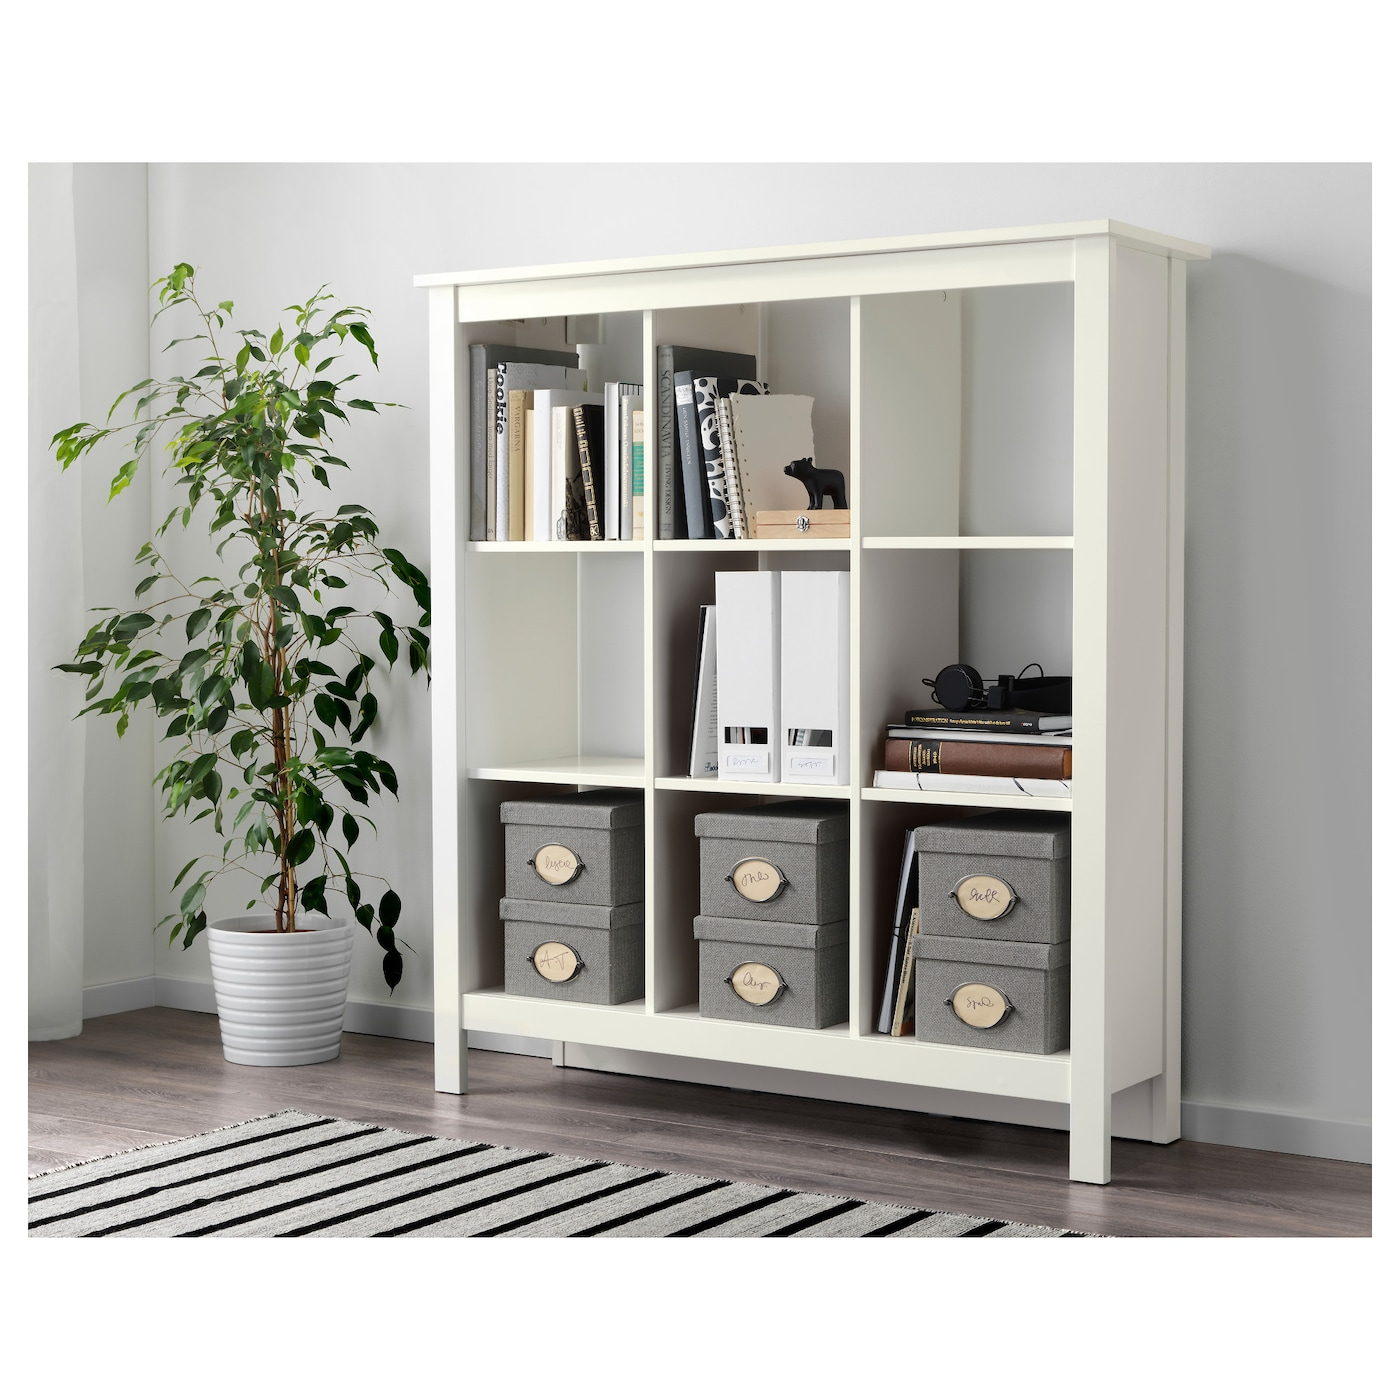 tomn s shelving unit white 116 x 127 cm ikea. Black Bedroom Furniture Sets. Home Design Ideas